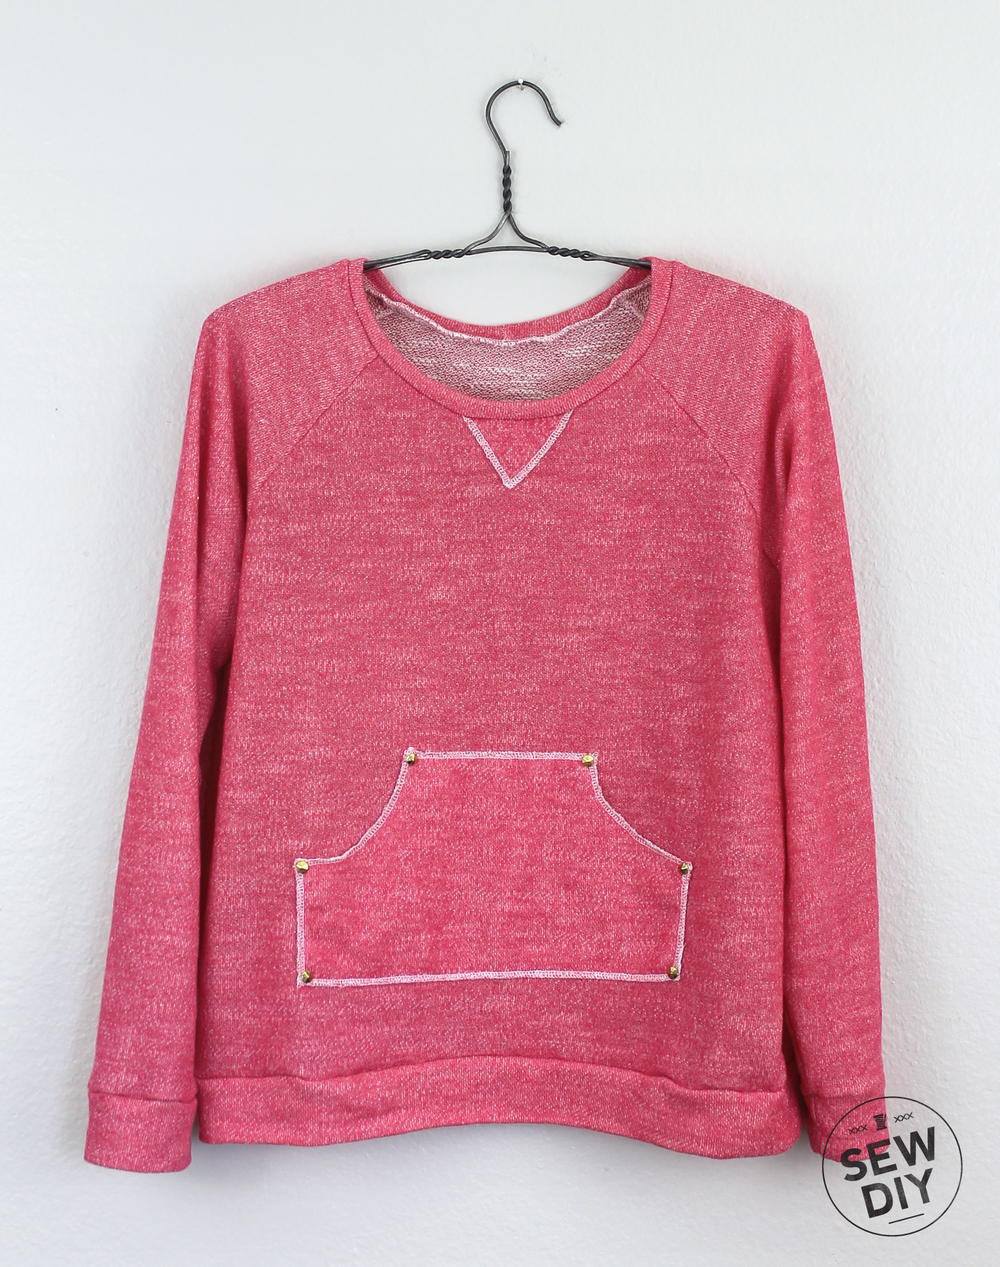 DIY Kangaroo Pocket Linden Sweatshirt – Sew DIY